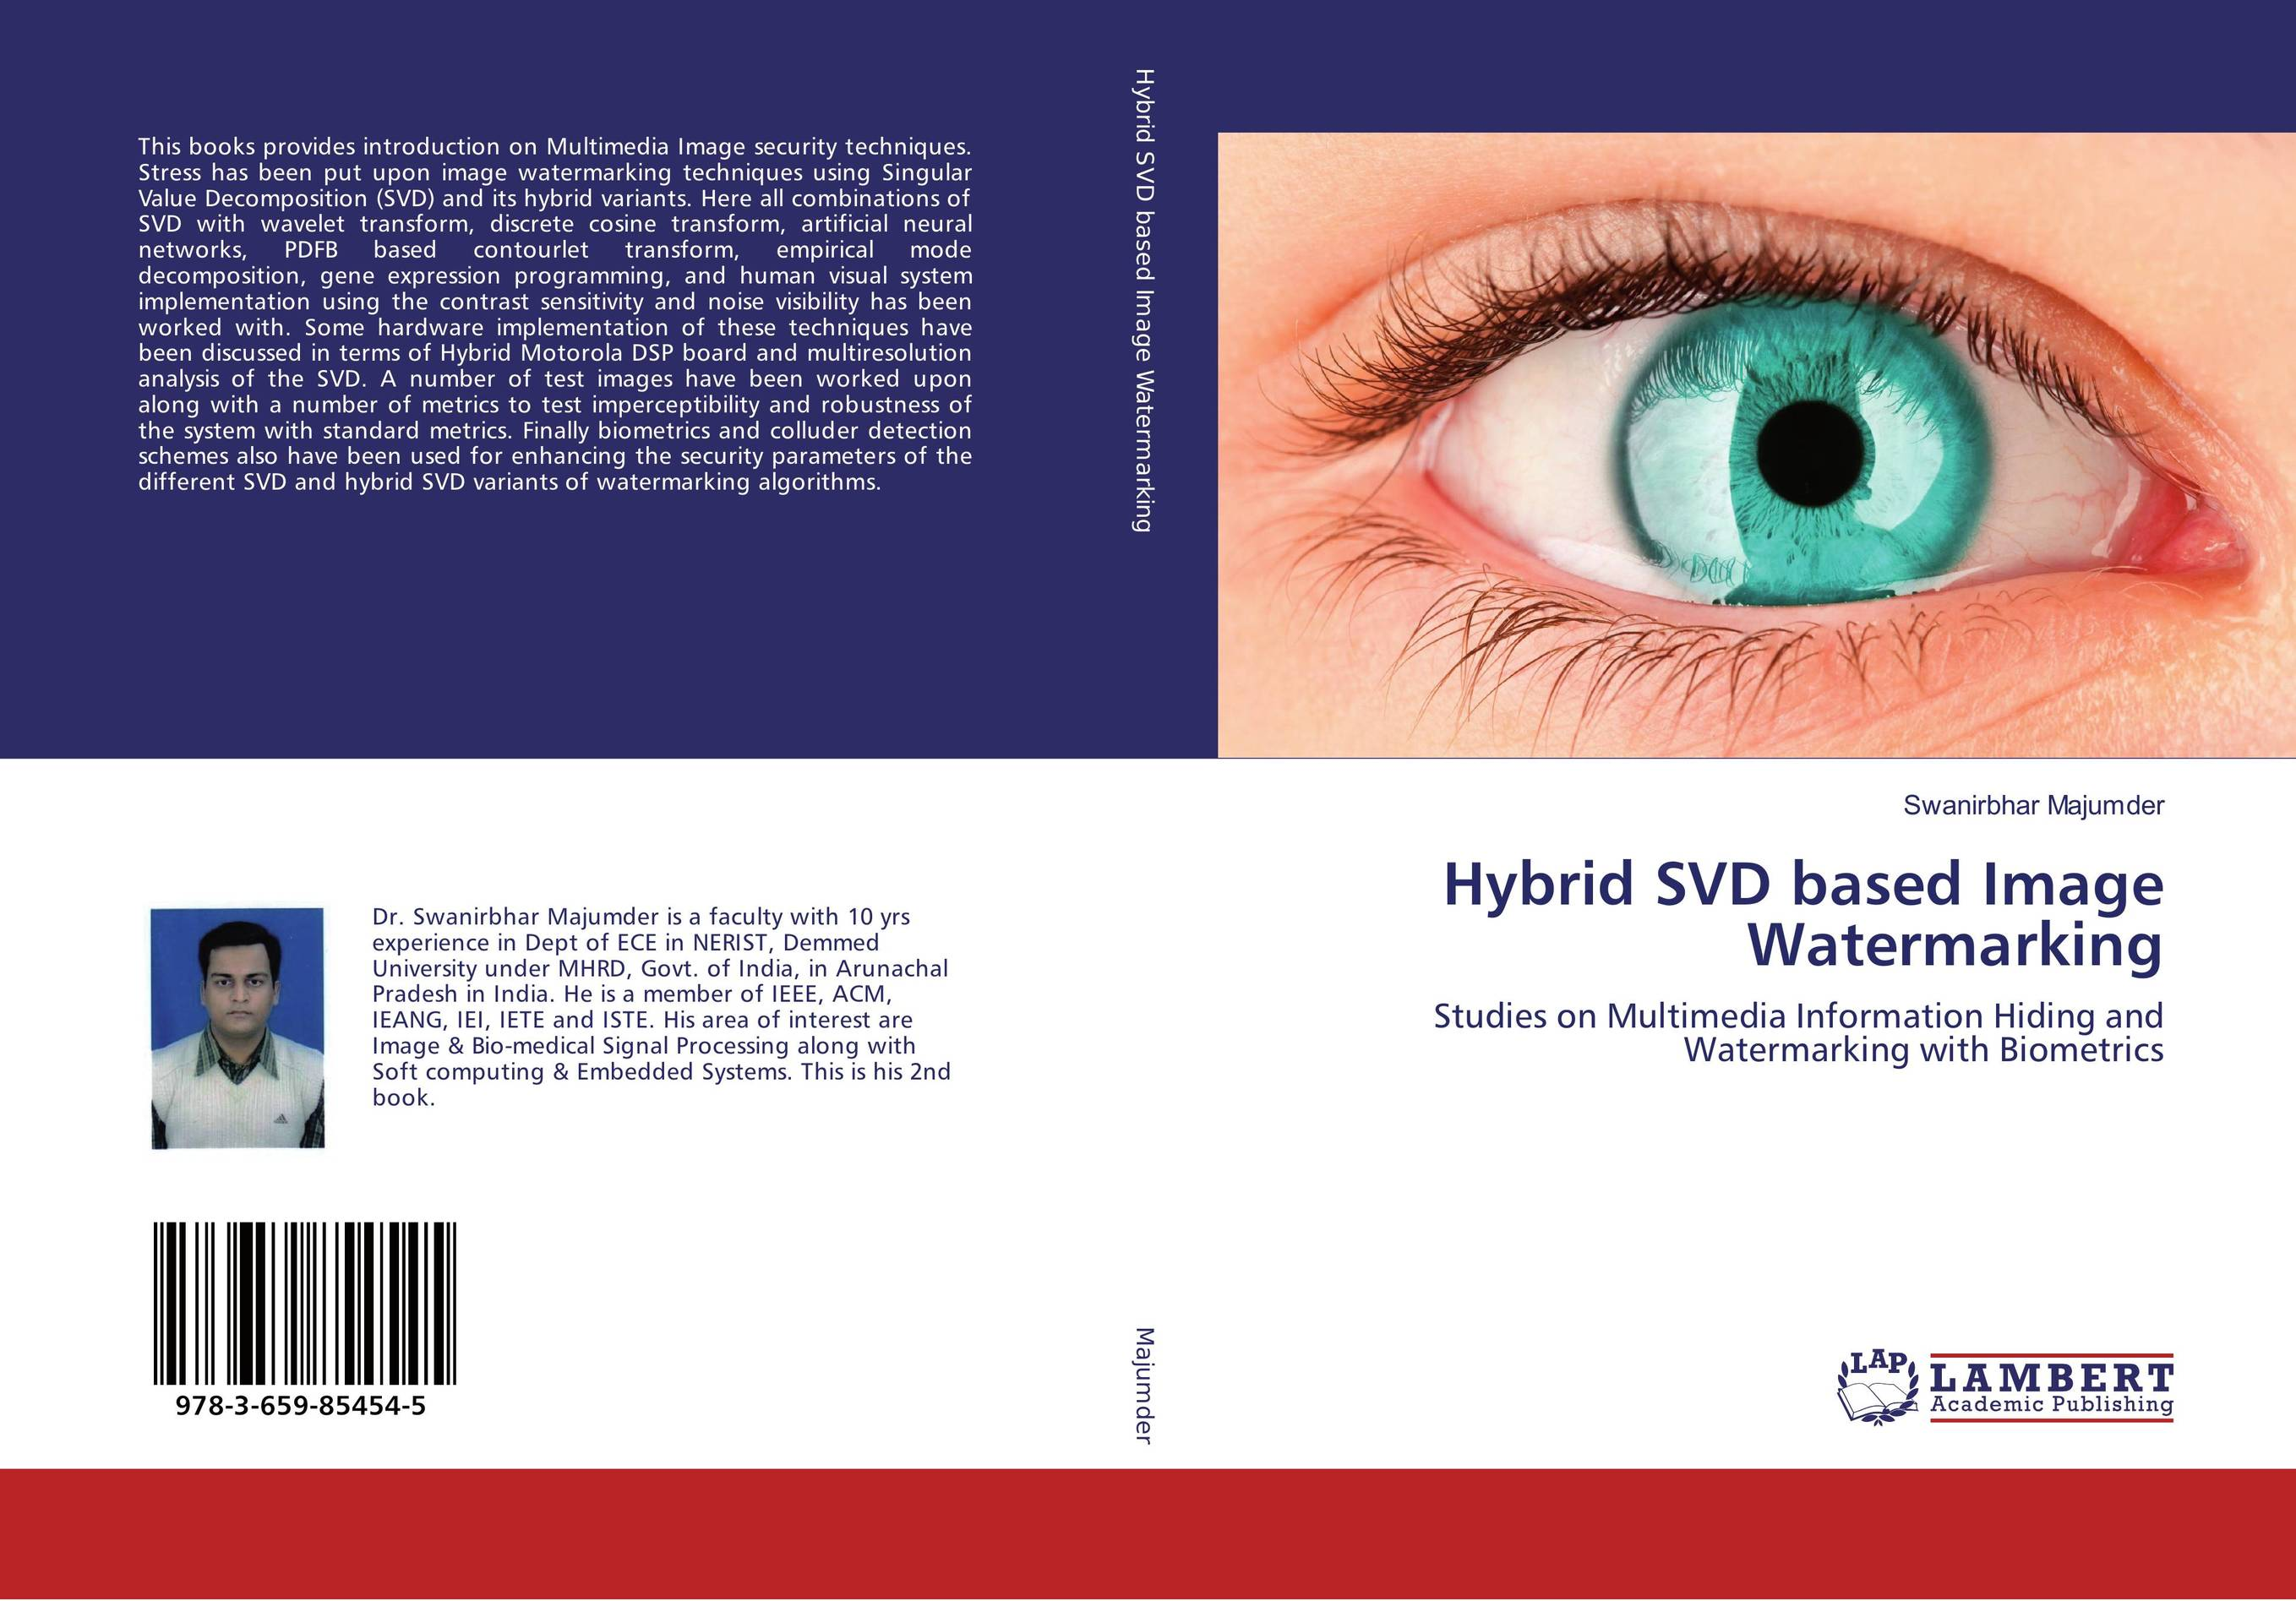 Hybrid SVD based Image Watermarking performance evaluation of color image watermarking